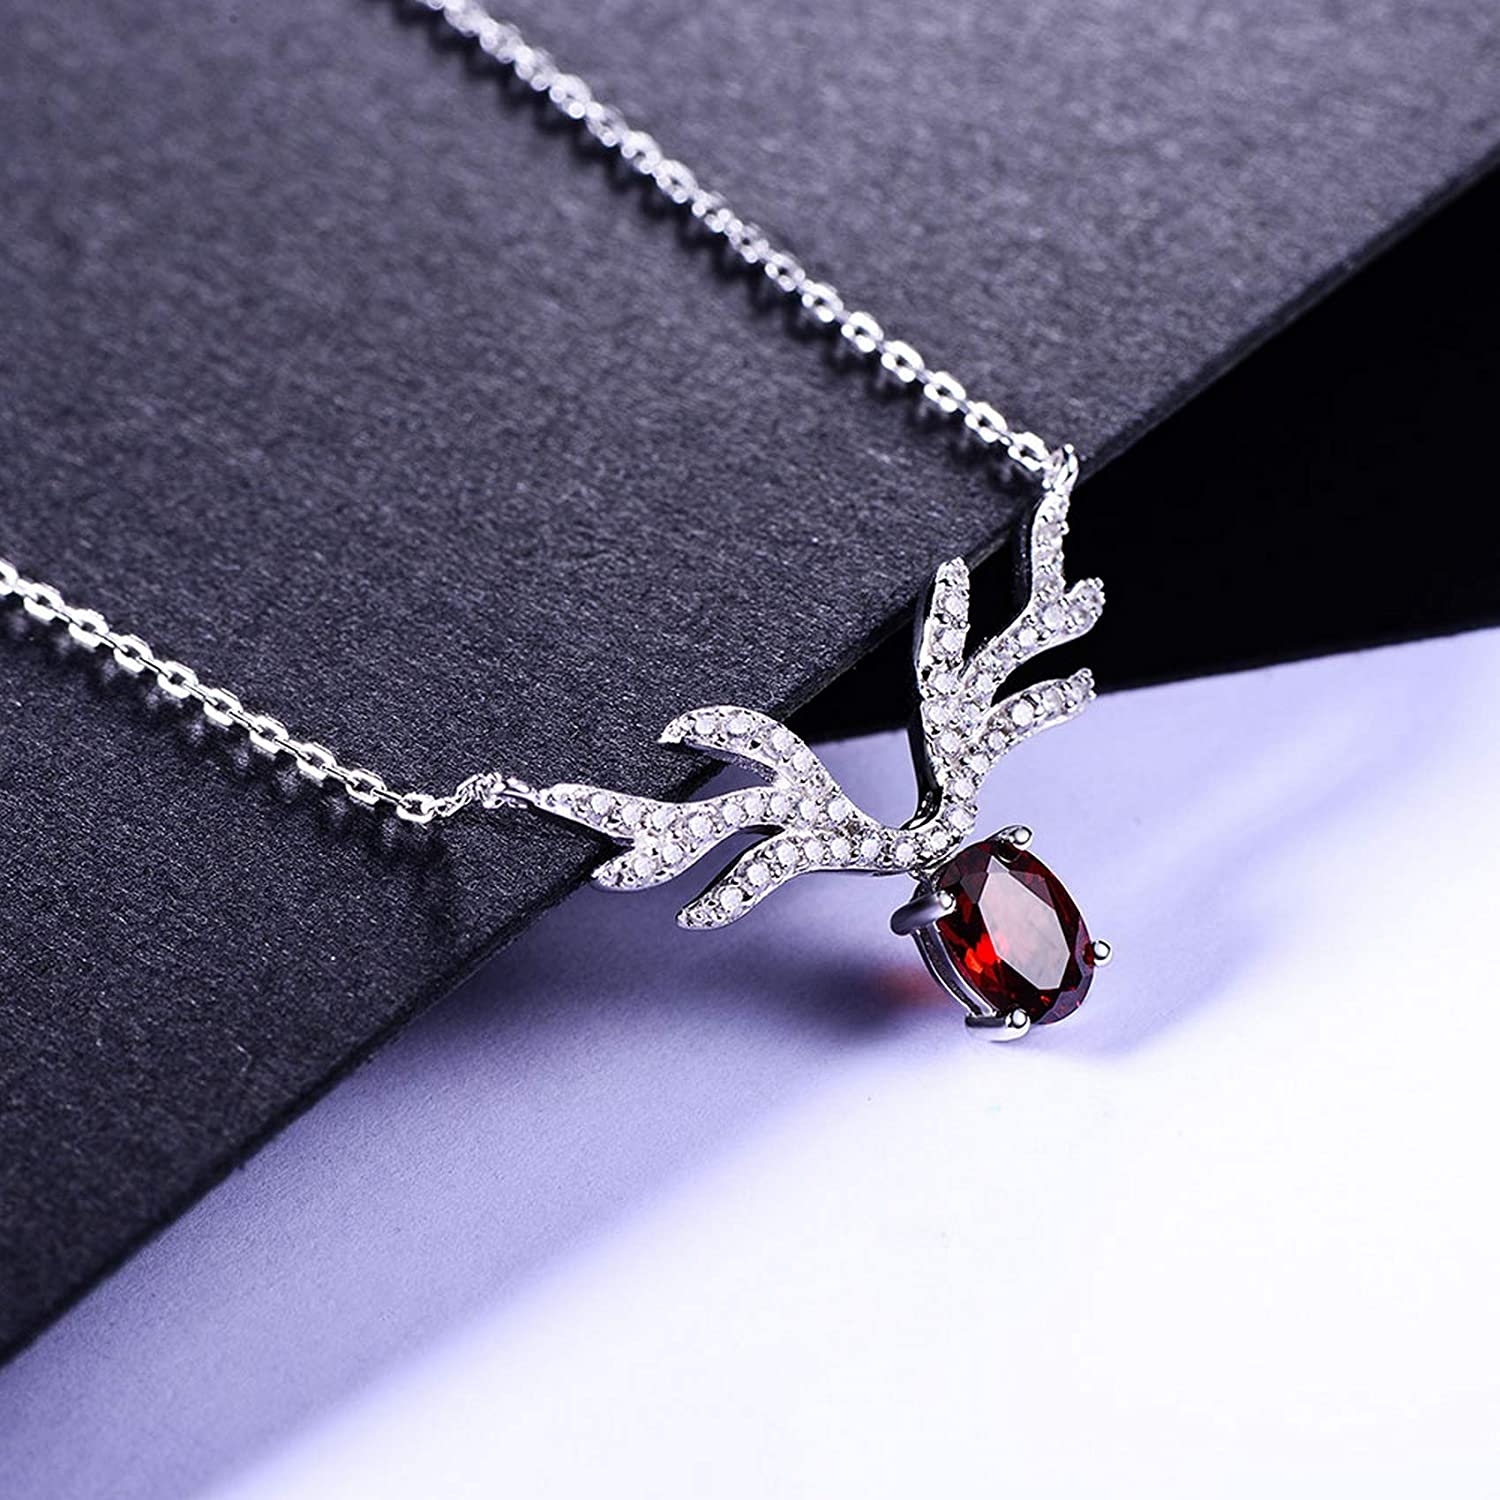 MMC Silver Necklaces 0.95ct Genuine Natural Red Garnet Womens Pendants